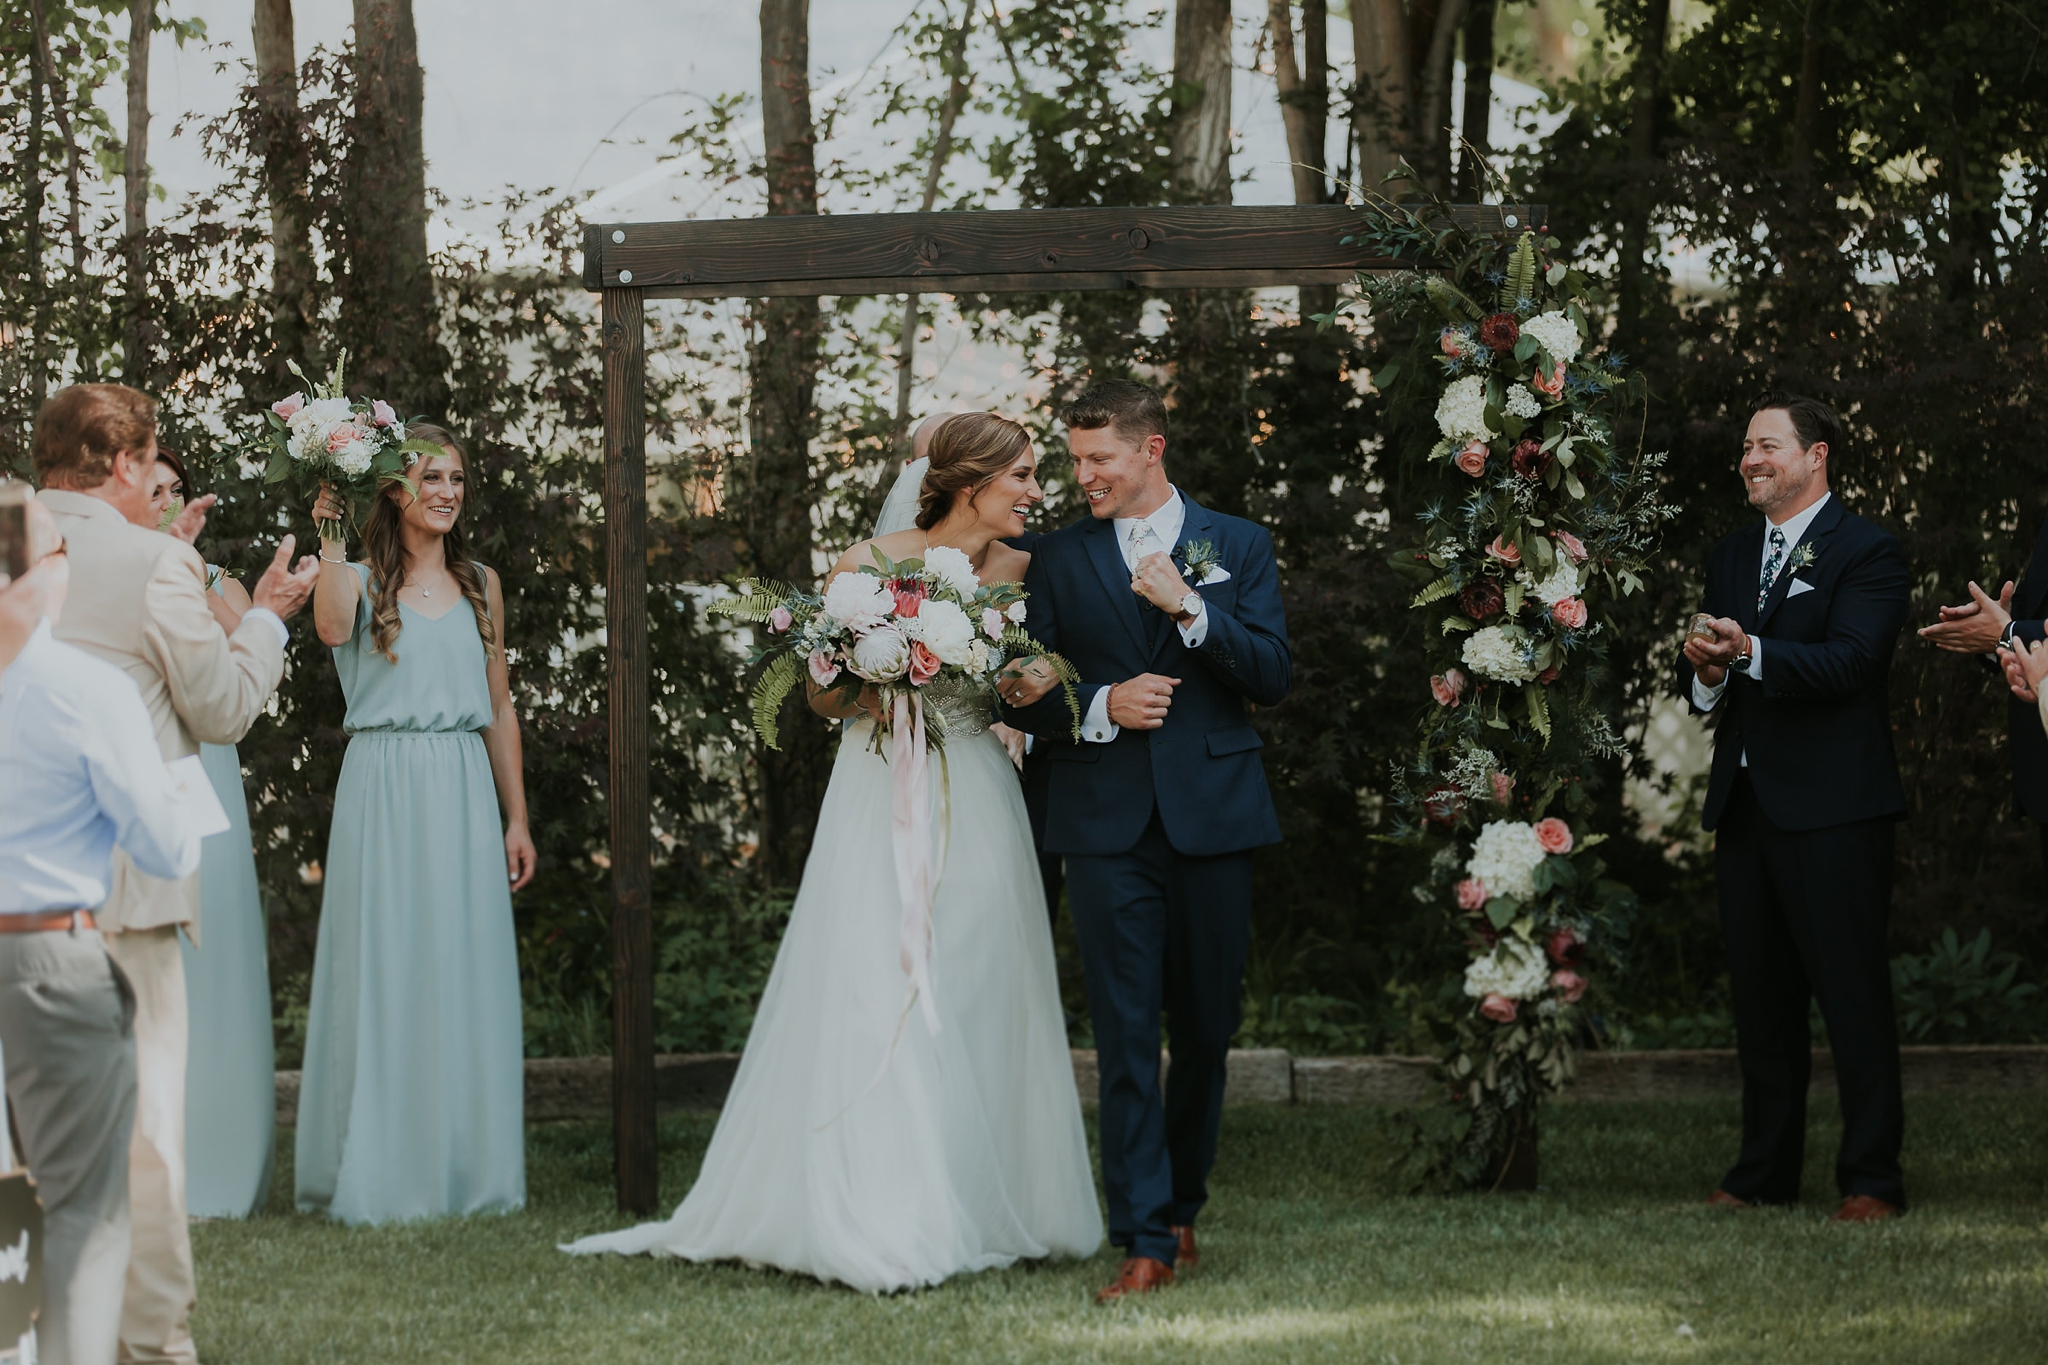 Alicia+lucia+photography+-+albuquerque+wedding+photographer+-+santa+fe+wedding+photography+-+new+mexico+wedding+photographer+-+new+mexico+wedding+-+wedding+vows+-+writing+your+own+vows+-+wedding+inspo_0050.jpg